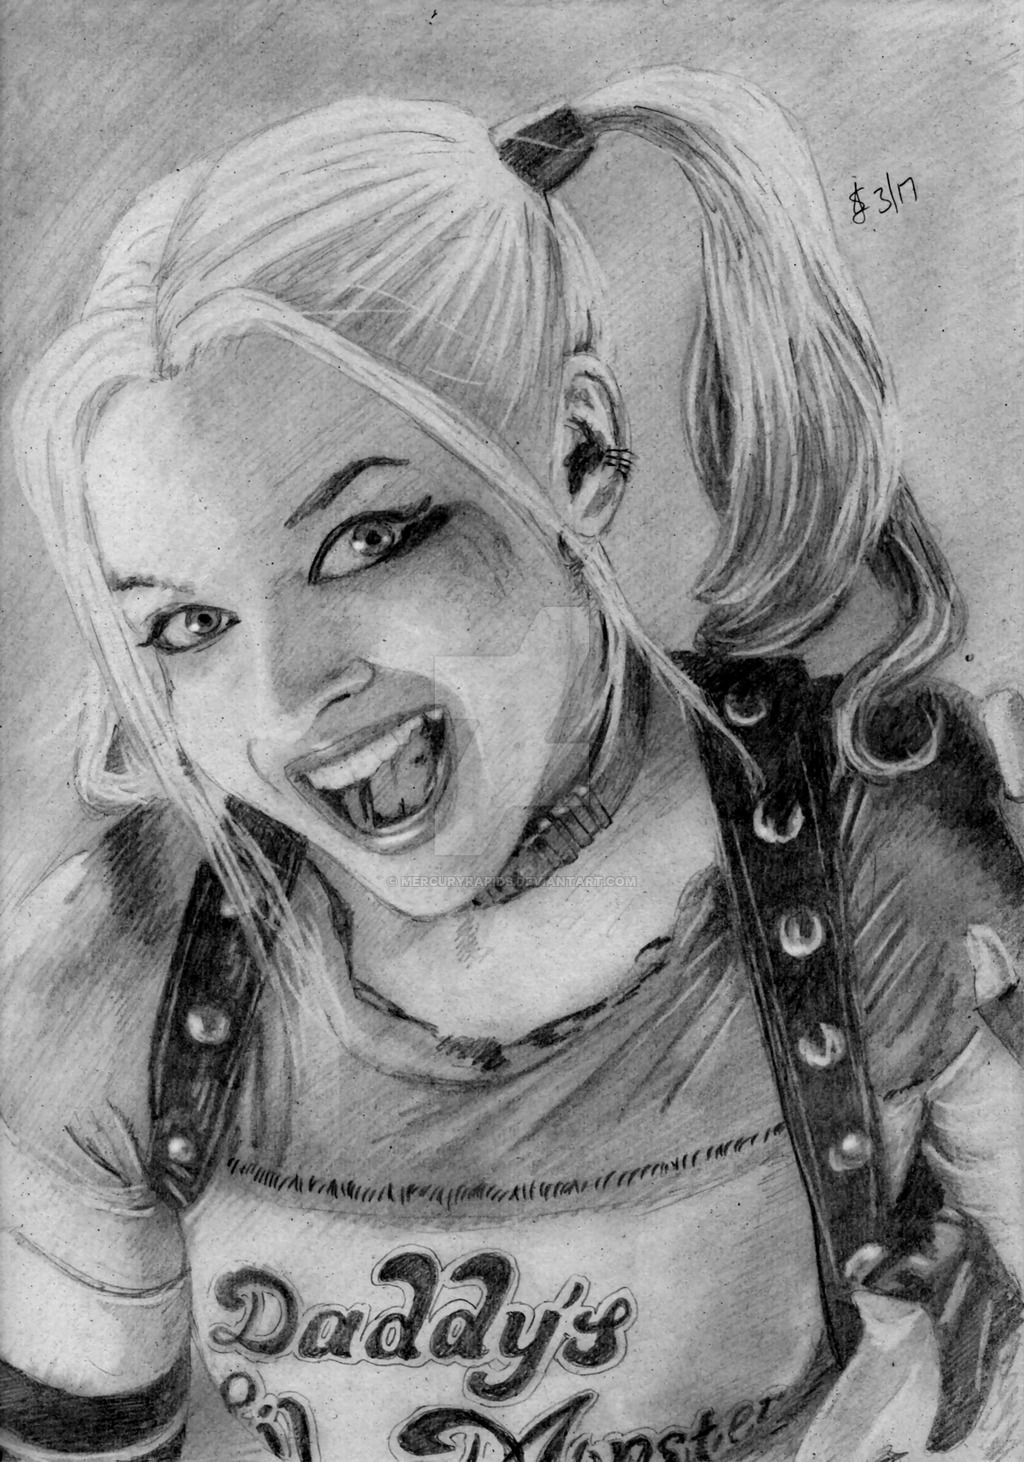 Pencil drawing of harley quinn harley quinn by mercuryrapids on